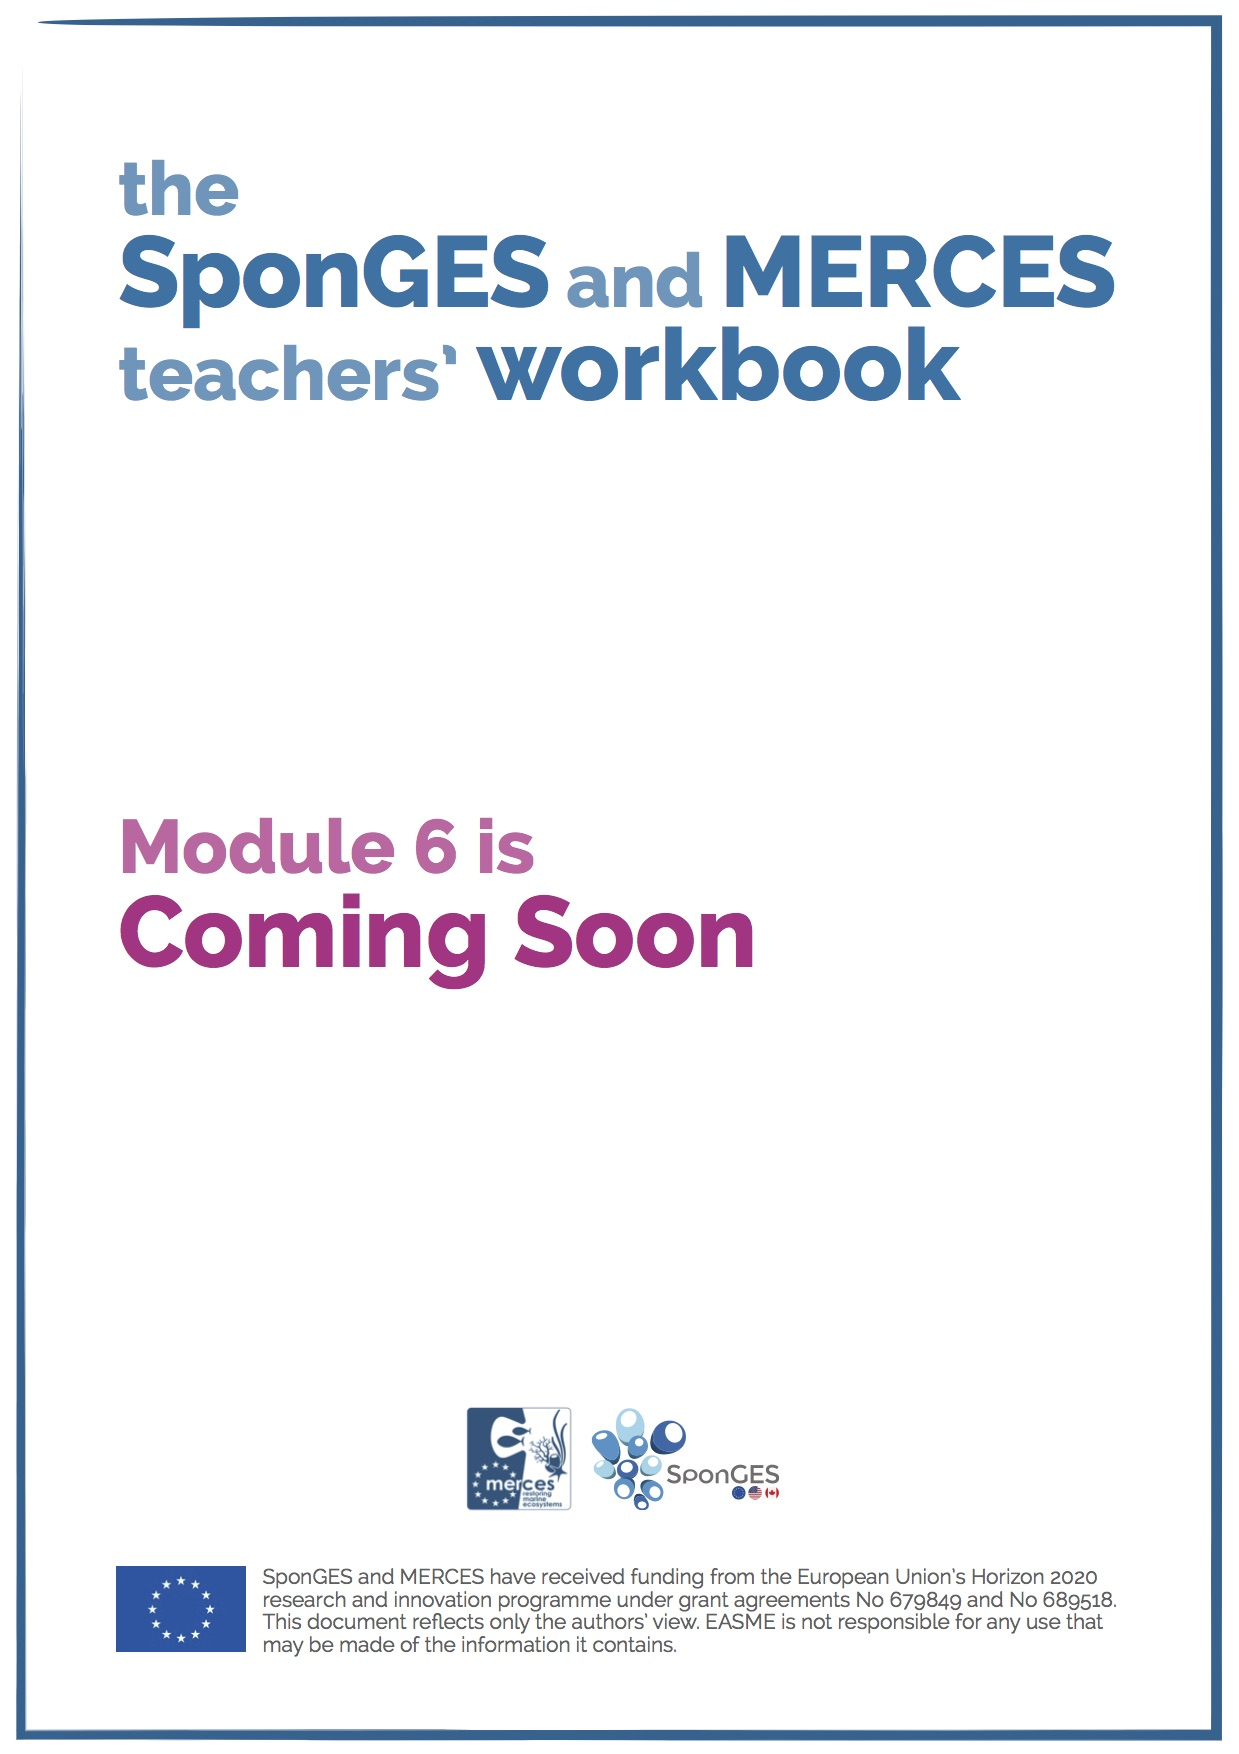 Module 6 of the SponGES and MERCES teachers' workbook